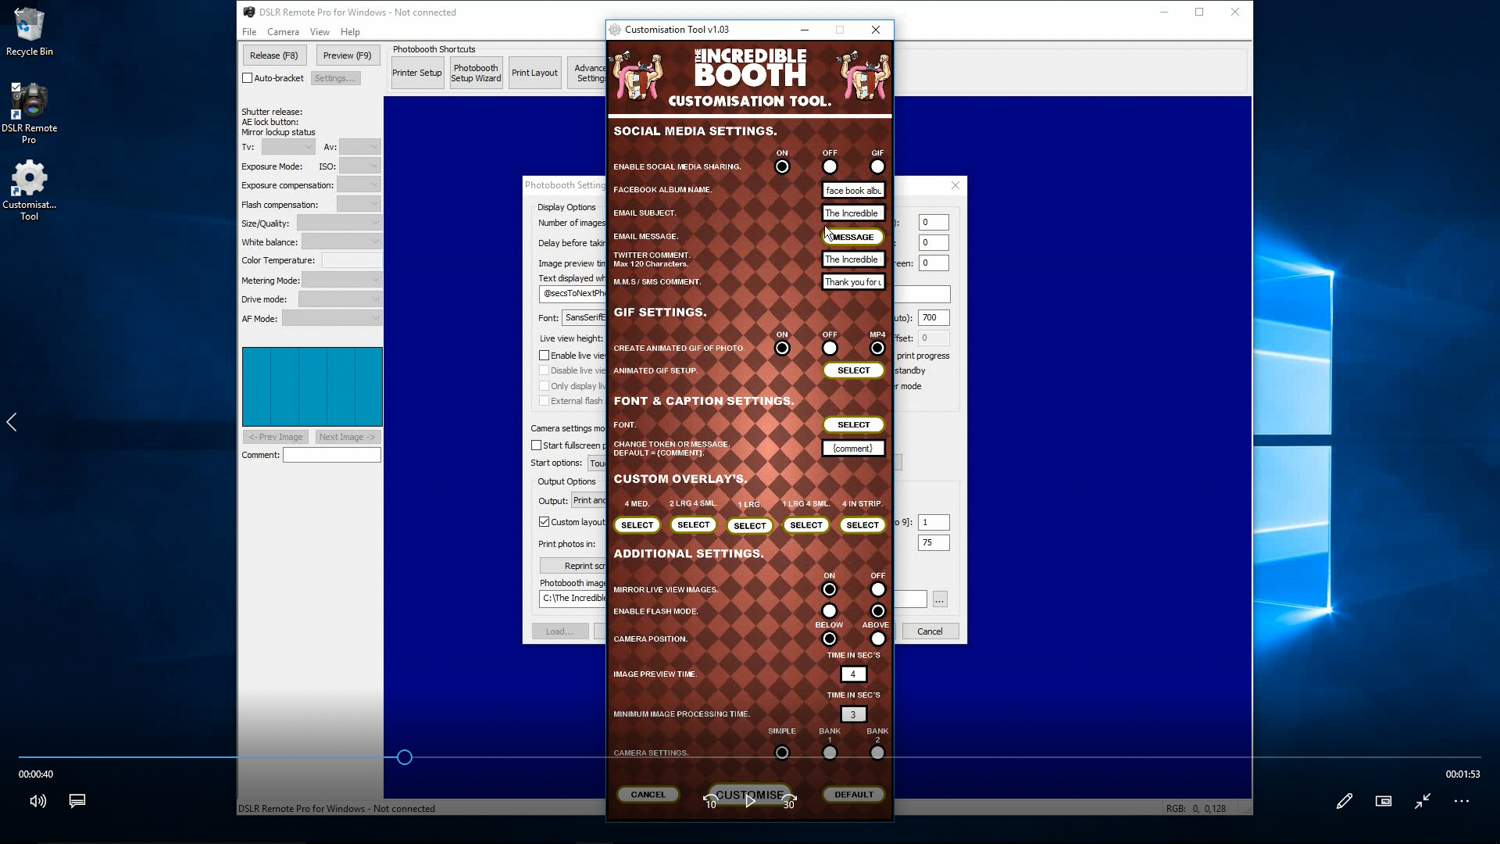 The Incredible Booth customisation tool